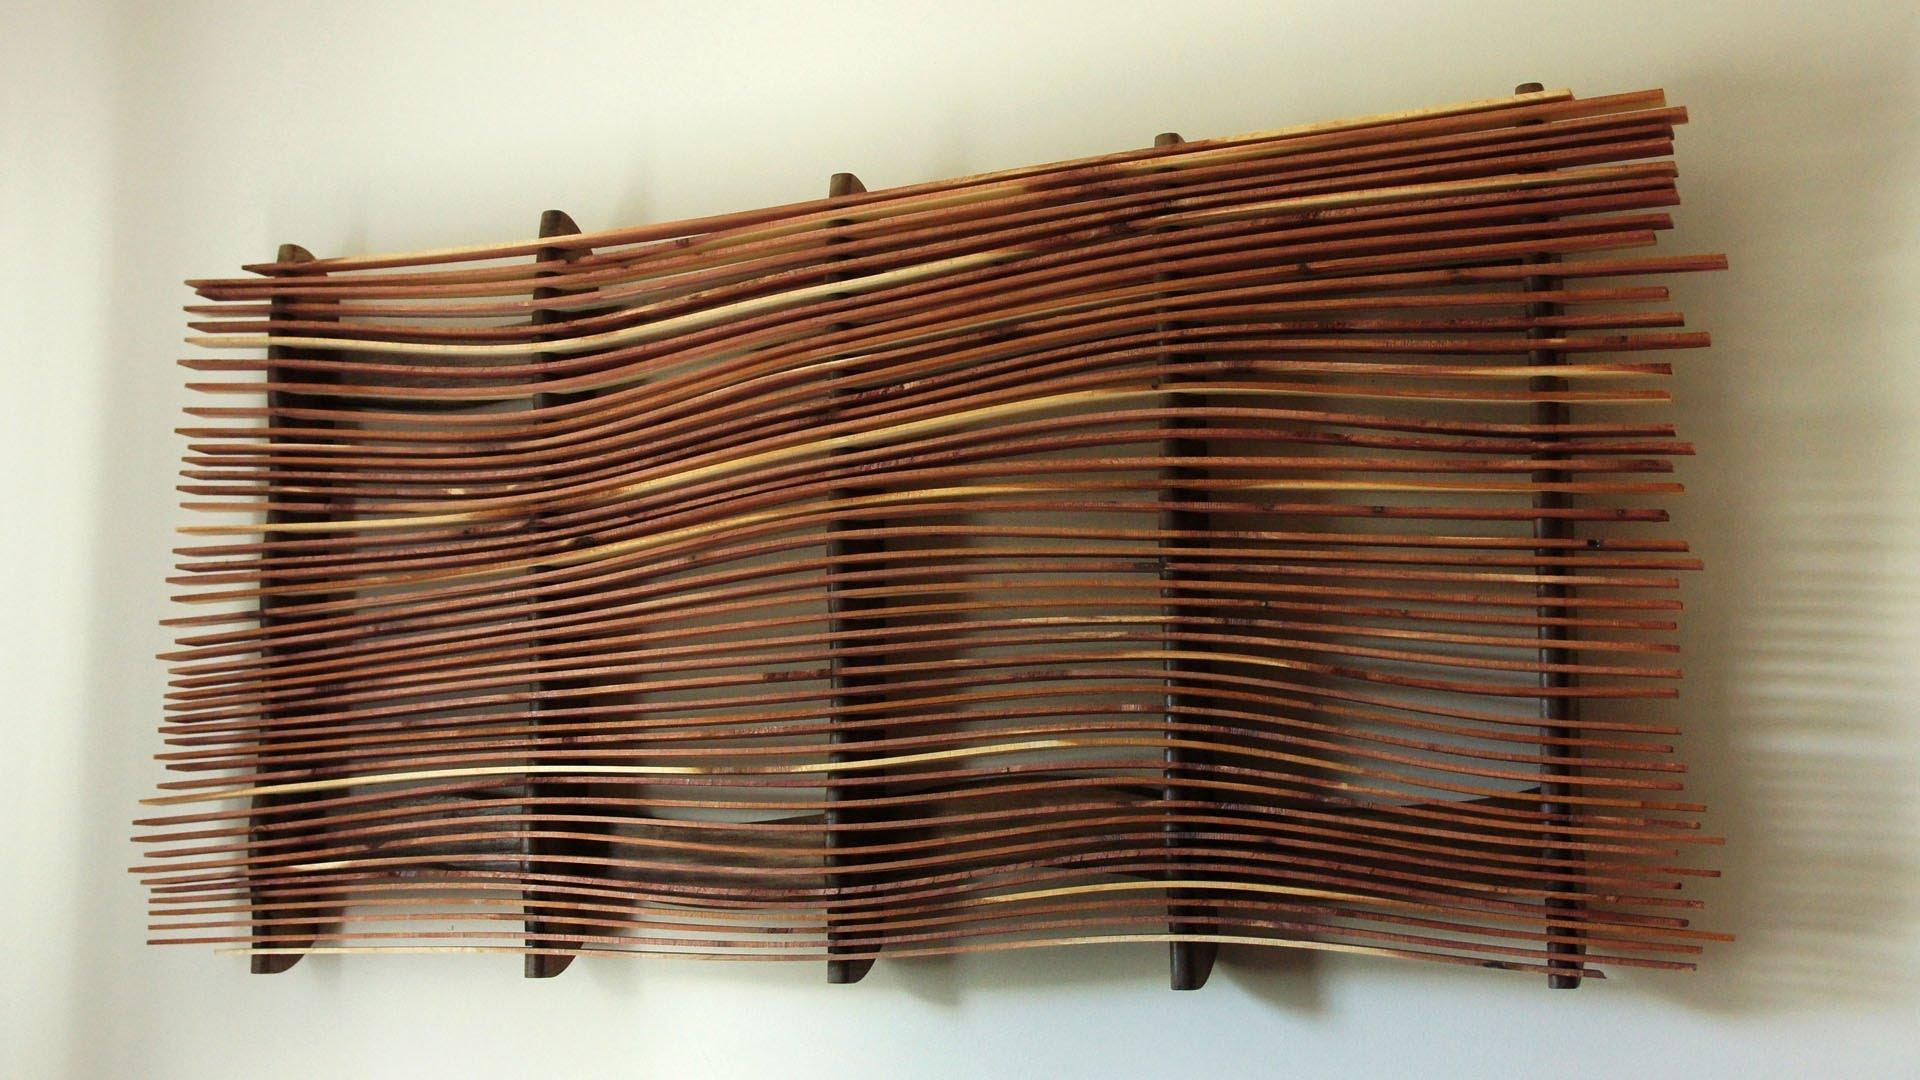 Wall Art Ideas Design : Creative Recycled Wall Art On Wood Intended For Recycled Wall Art (View 16 of 20)